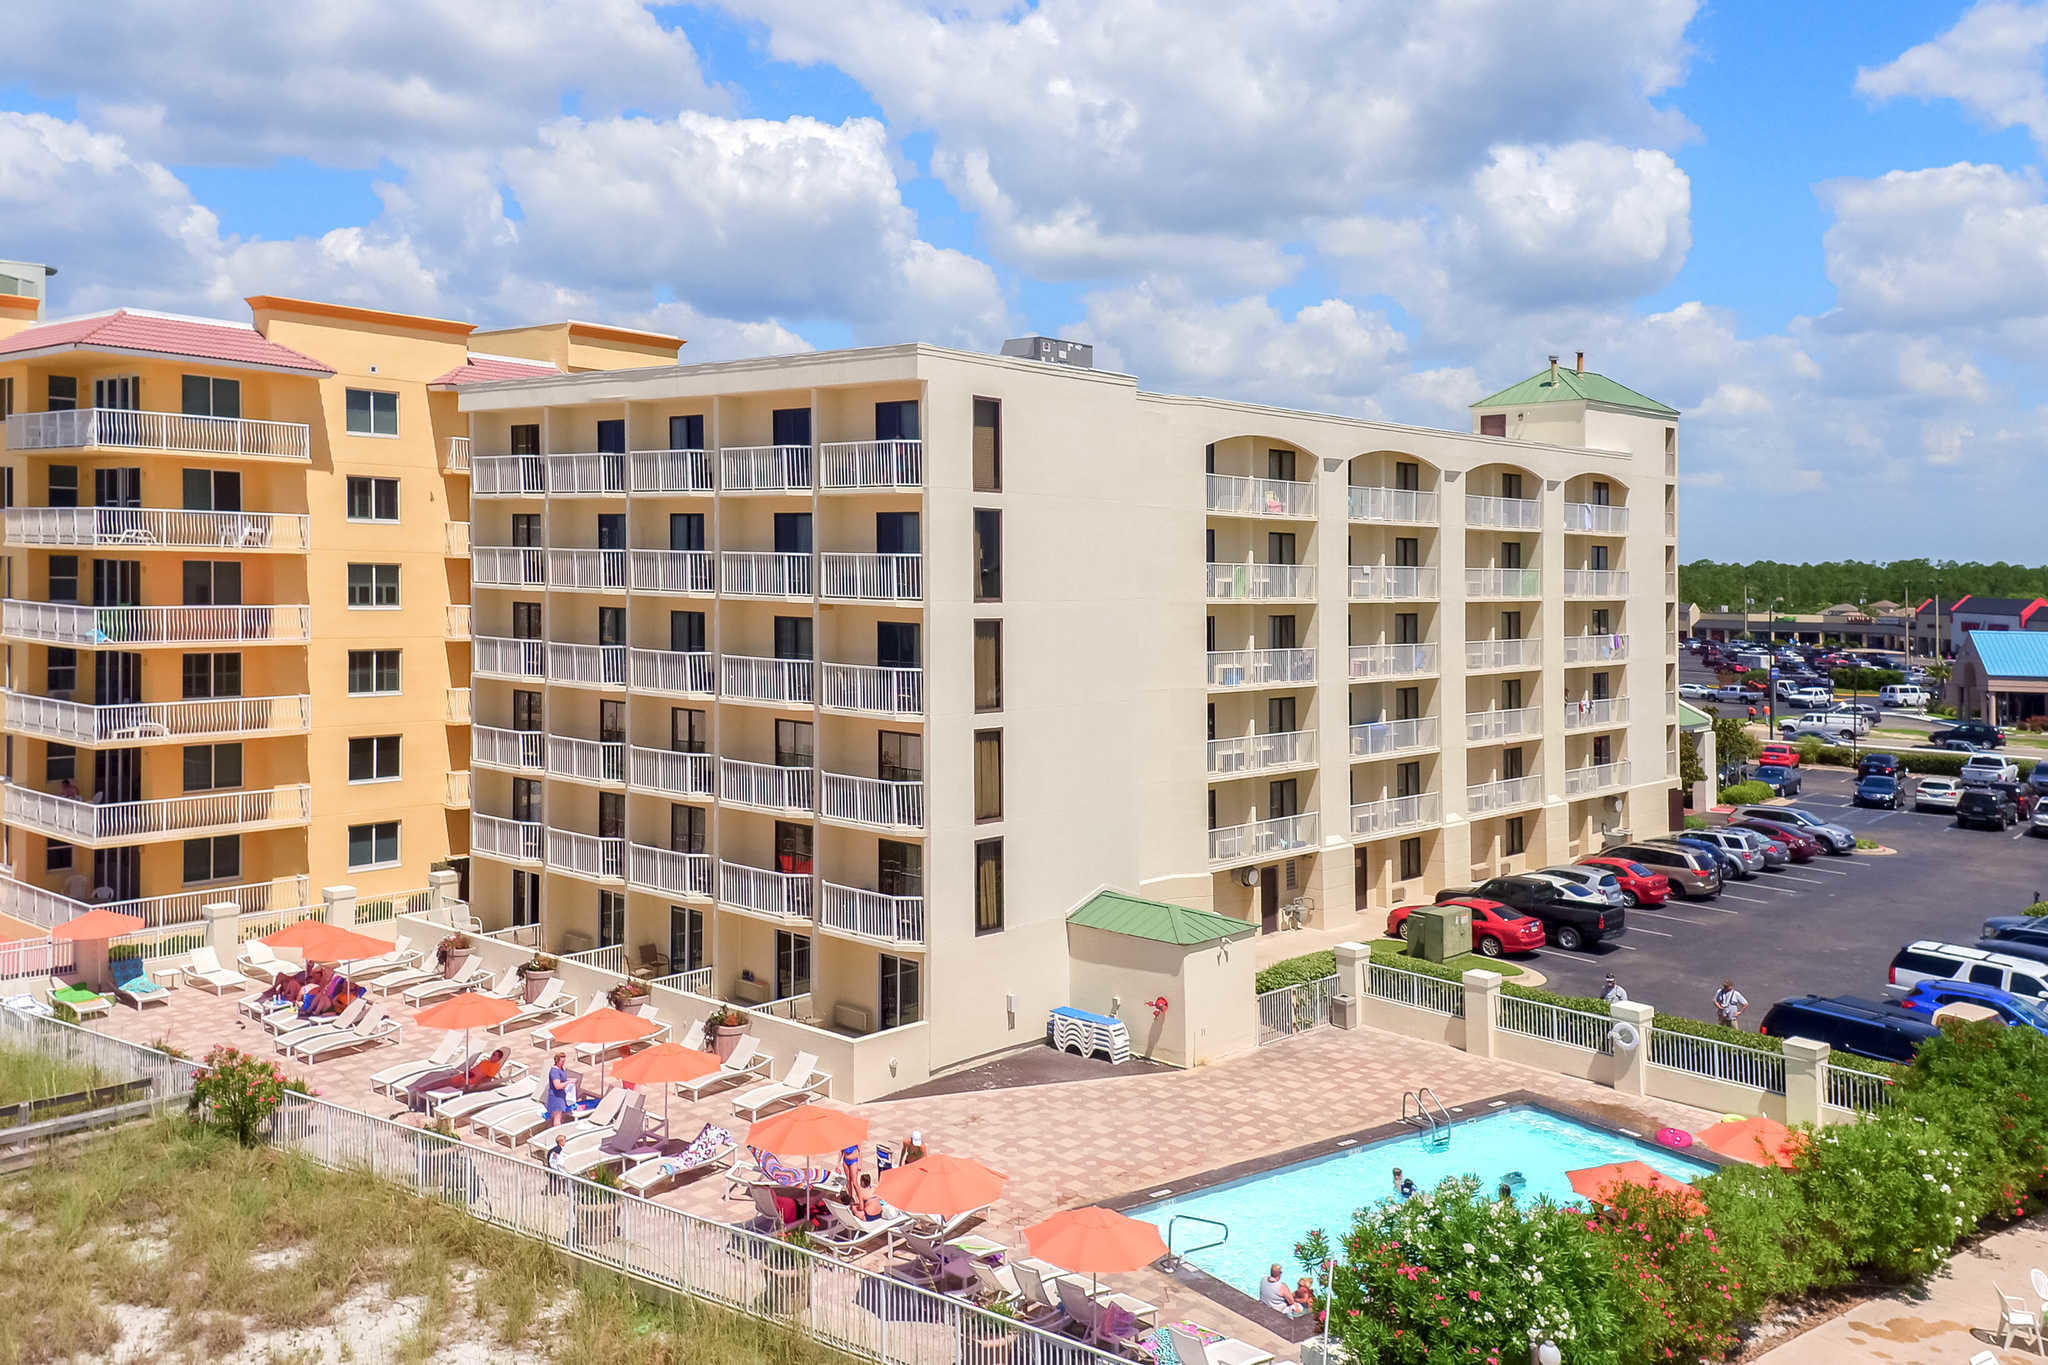 Hotels Orange Of Sleep Inn On The Beach Orange Beach Alabama